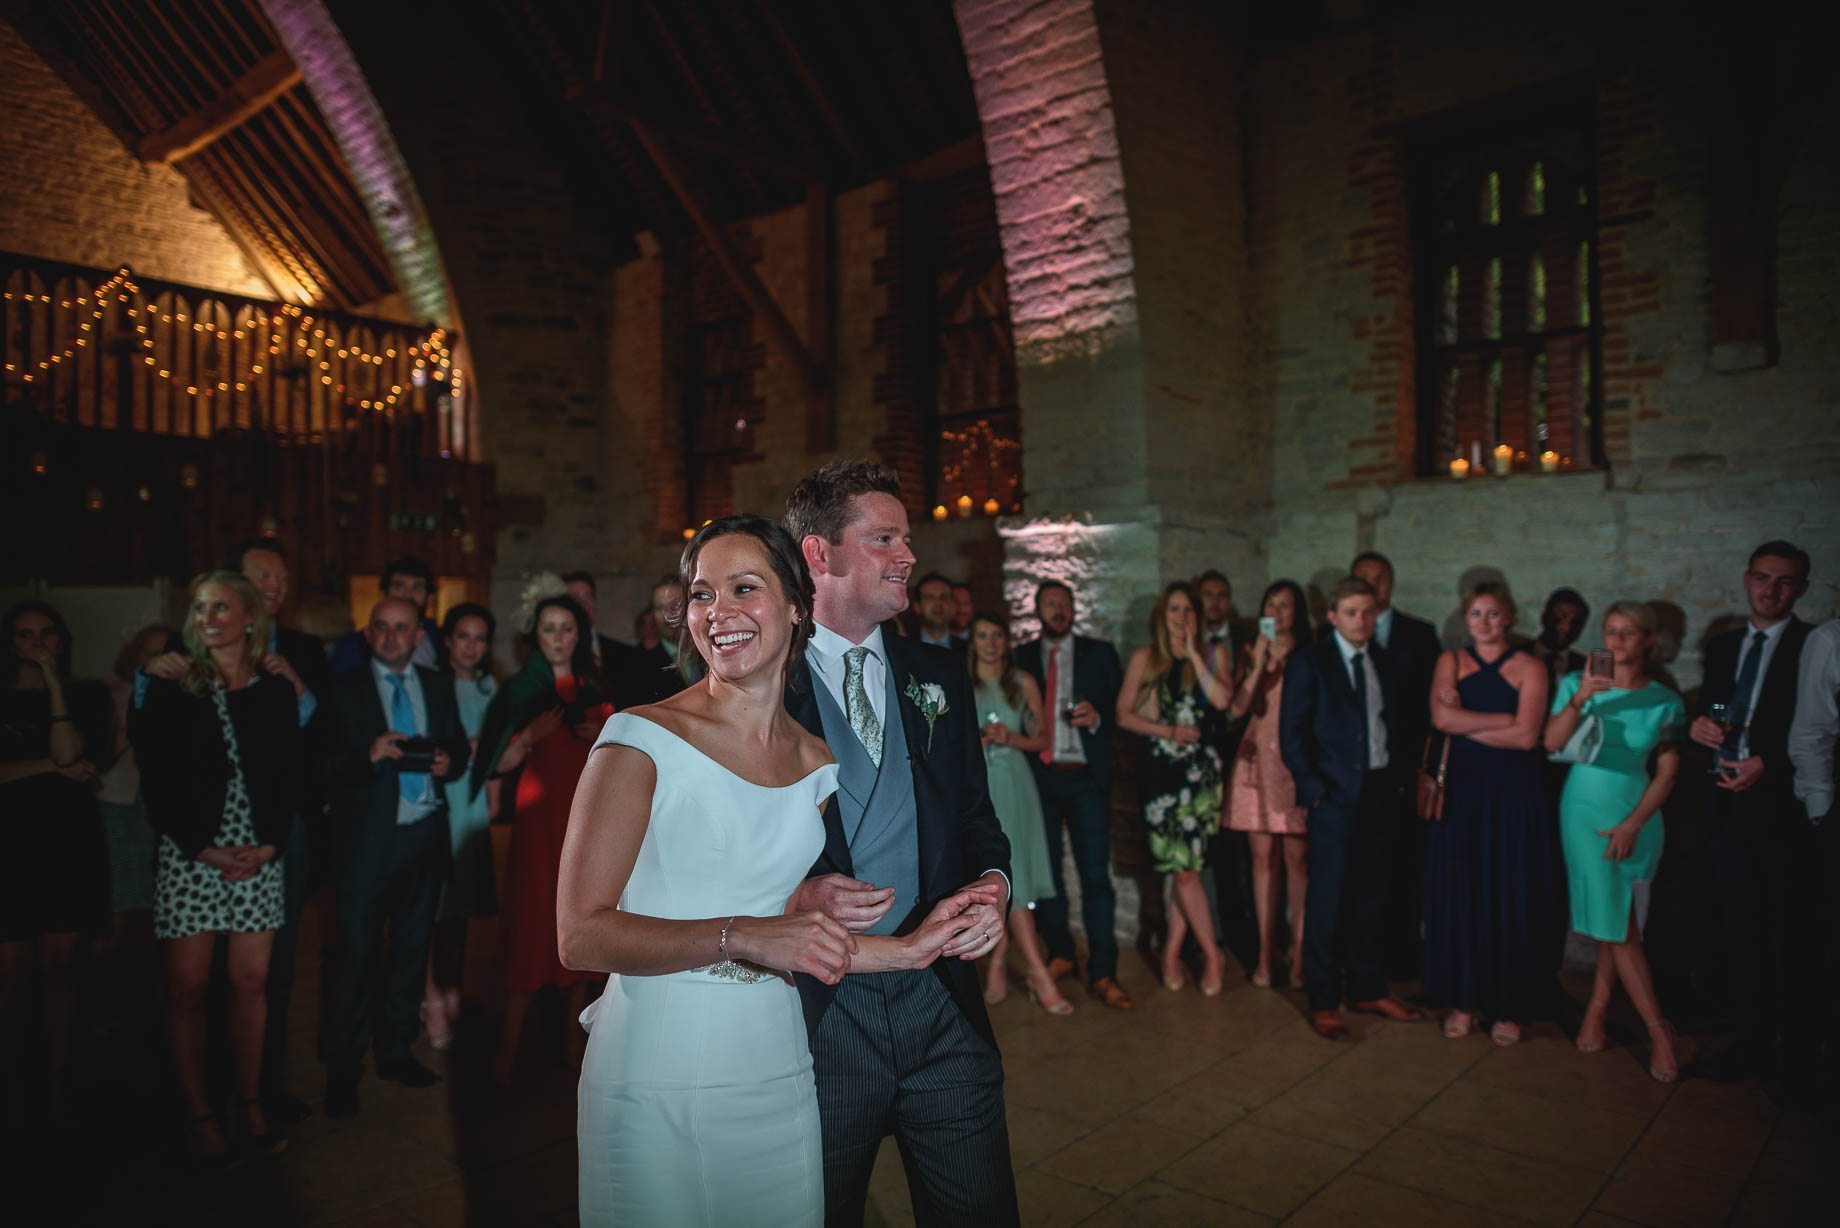 Tithe Barn wedding photography - Jayme and David (168 of 189)